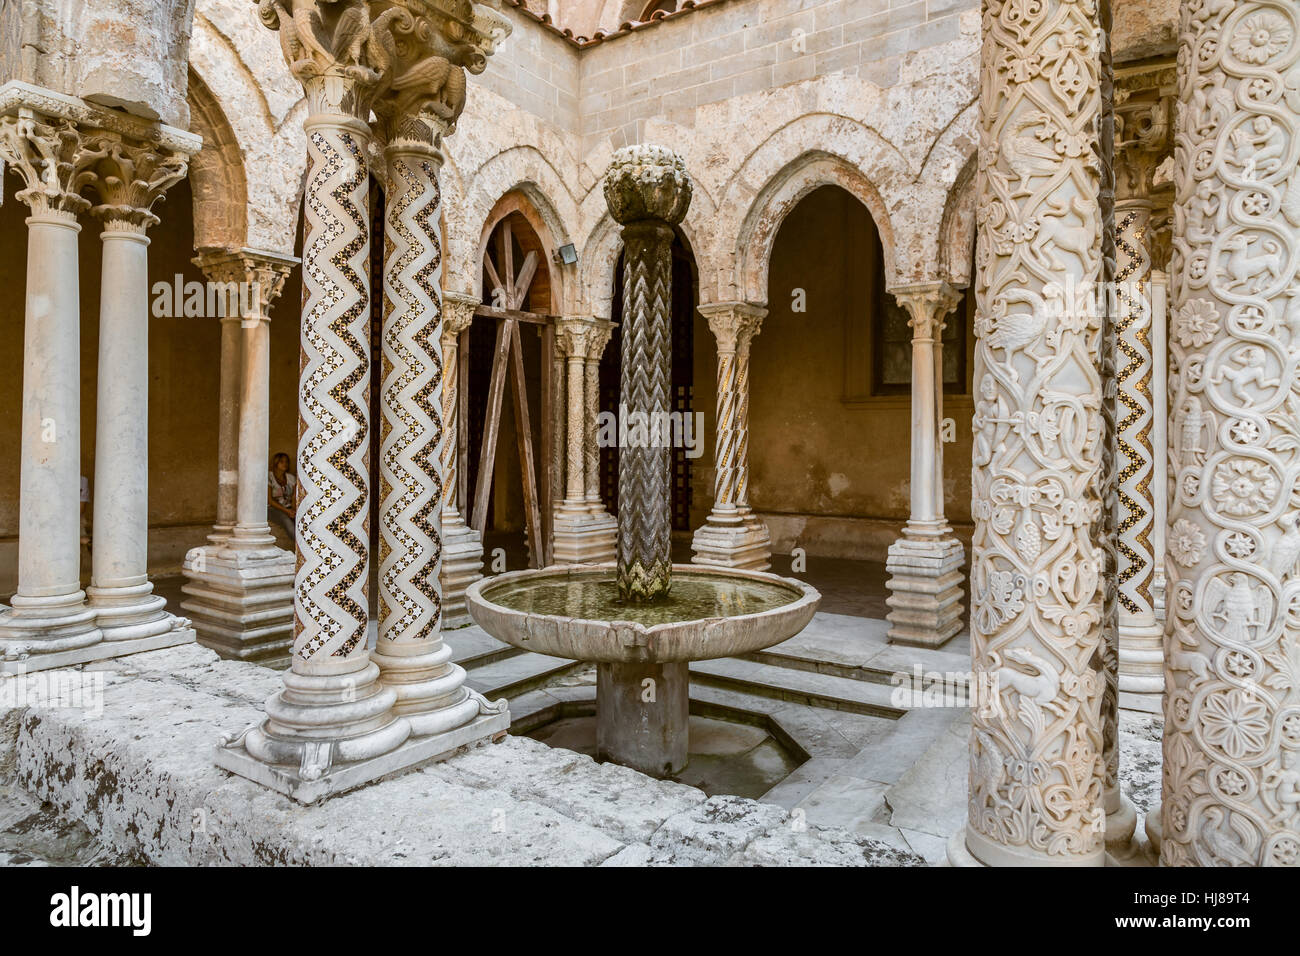 Cloisters Of The Duomo Of Monreale, Sicily - Stock Image